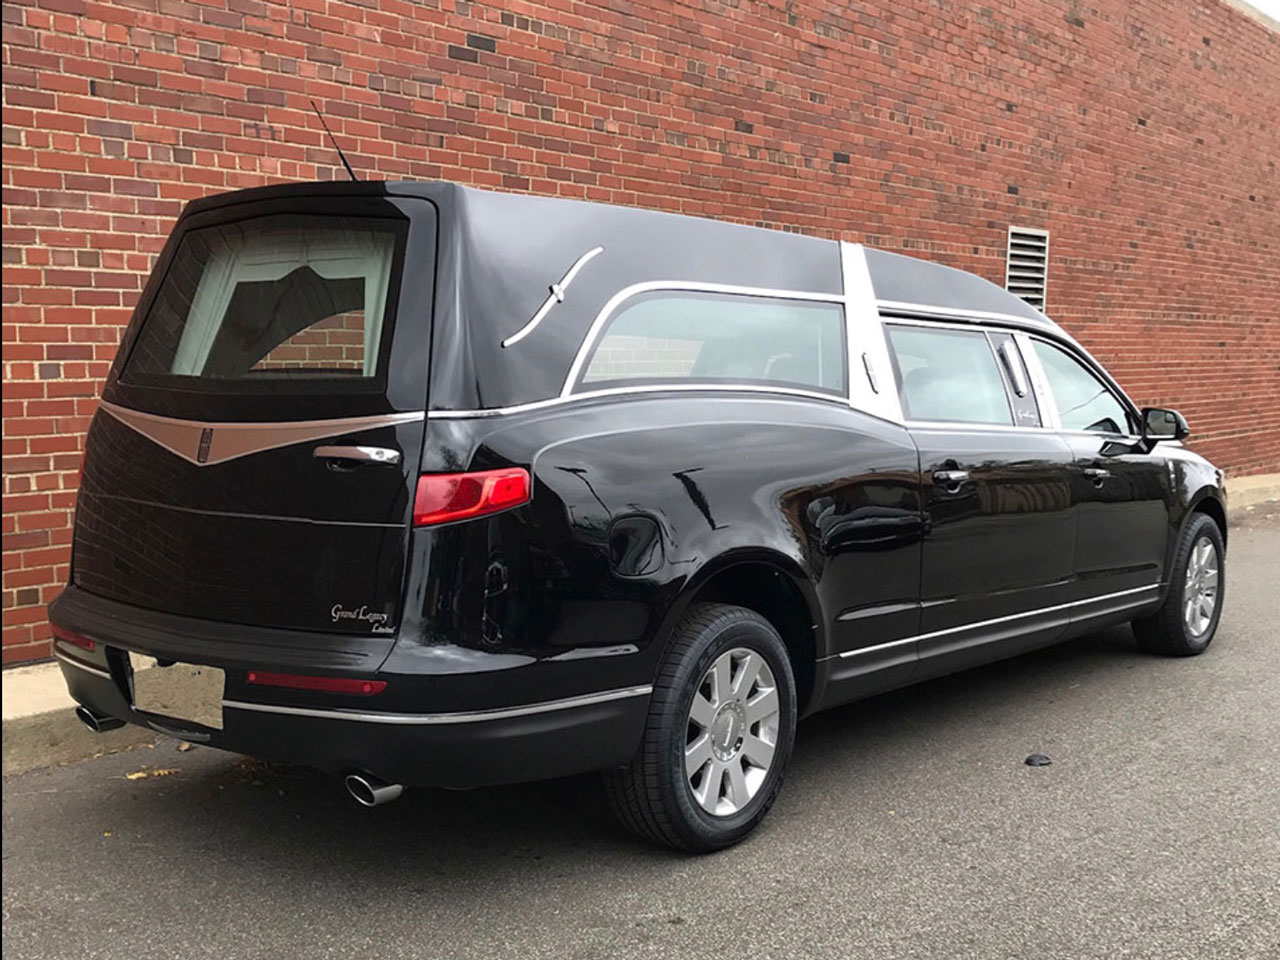 2019 MK Coach Company Grand Legacy Limited Hearse 5